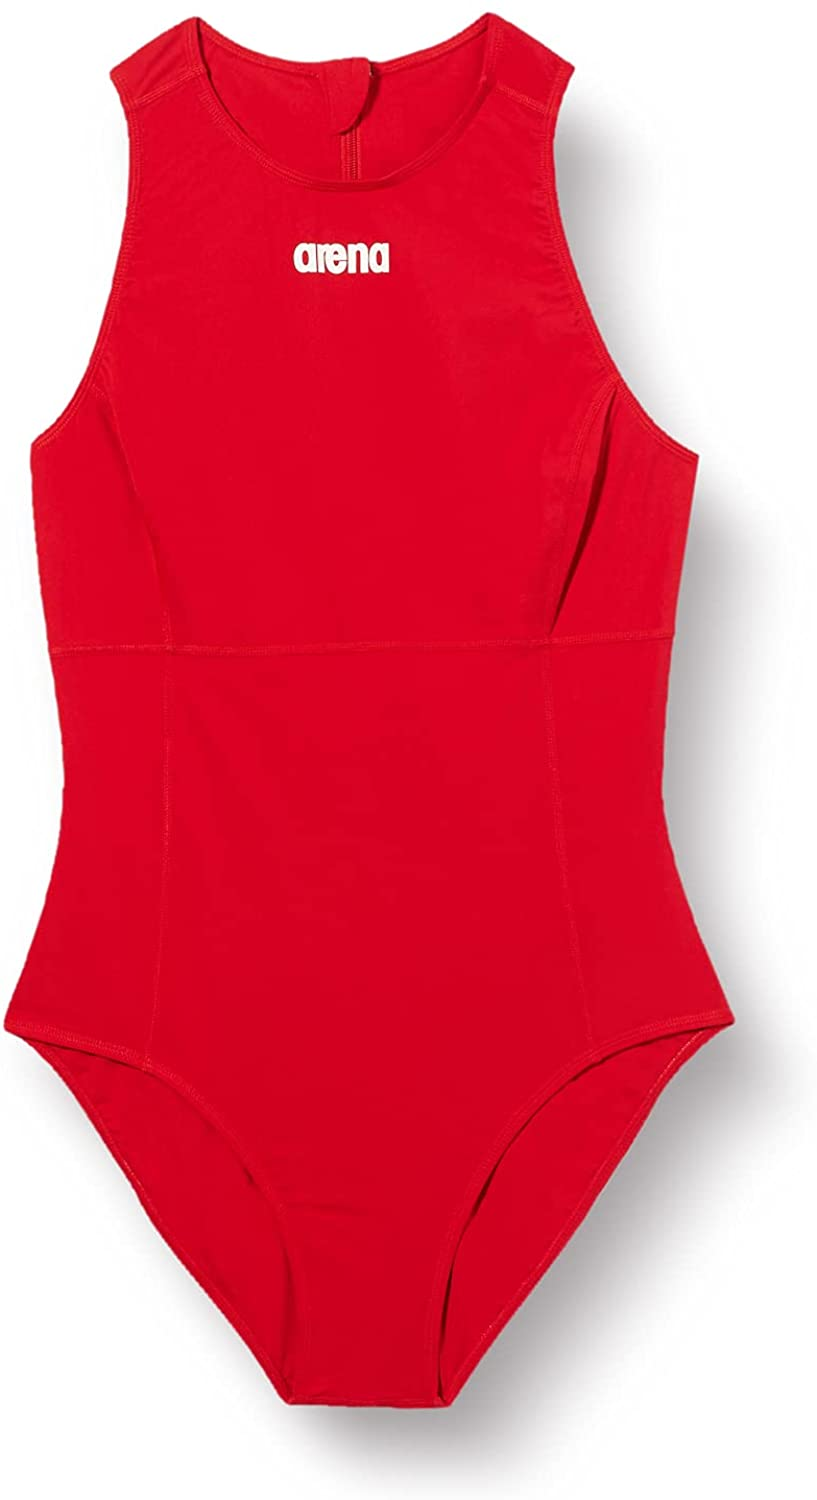 Arena Women's Free shipping on posting reviews Solid Waterpolo overseas Piece Swimsuit One